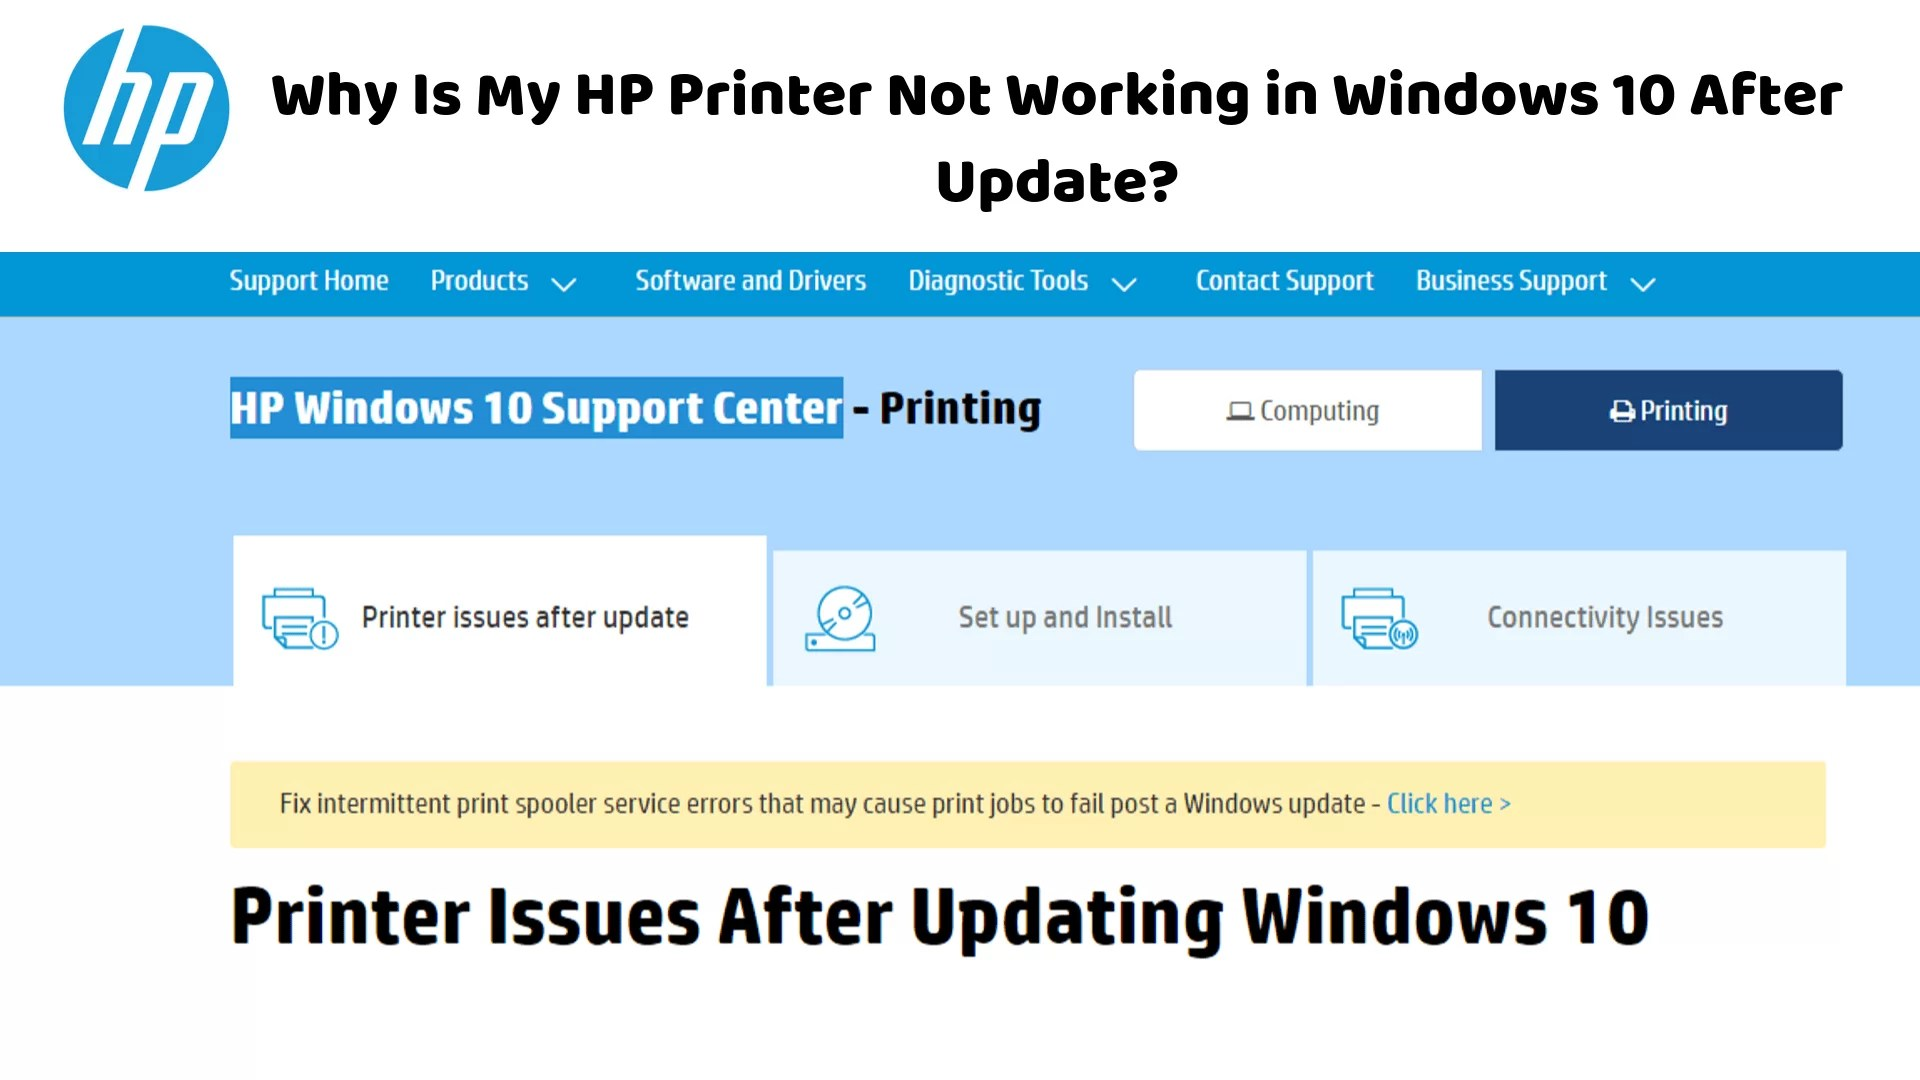 HP Printer Not Working in Windows 10